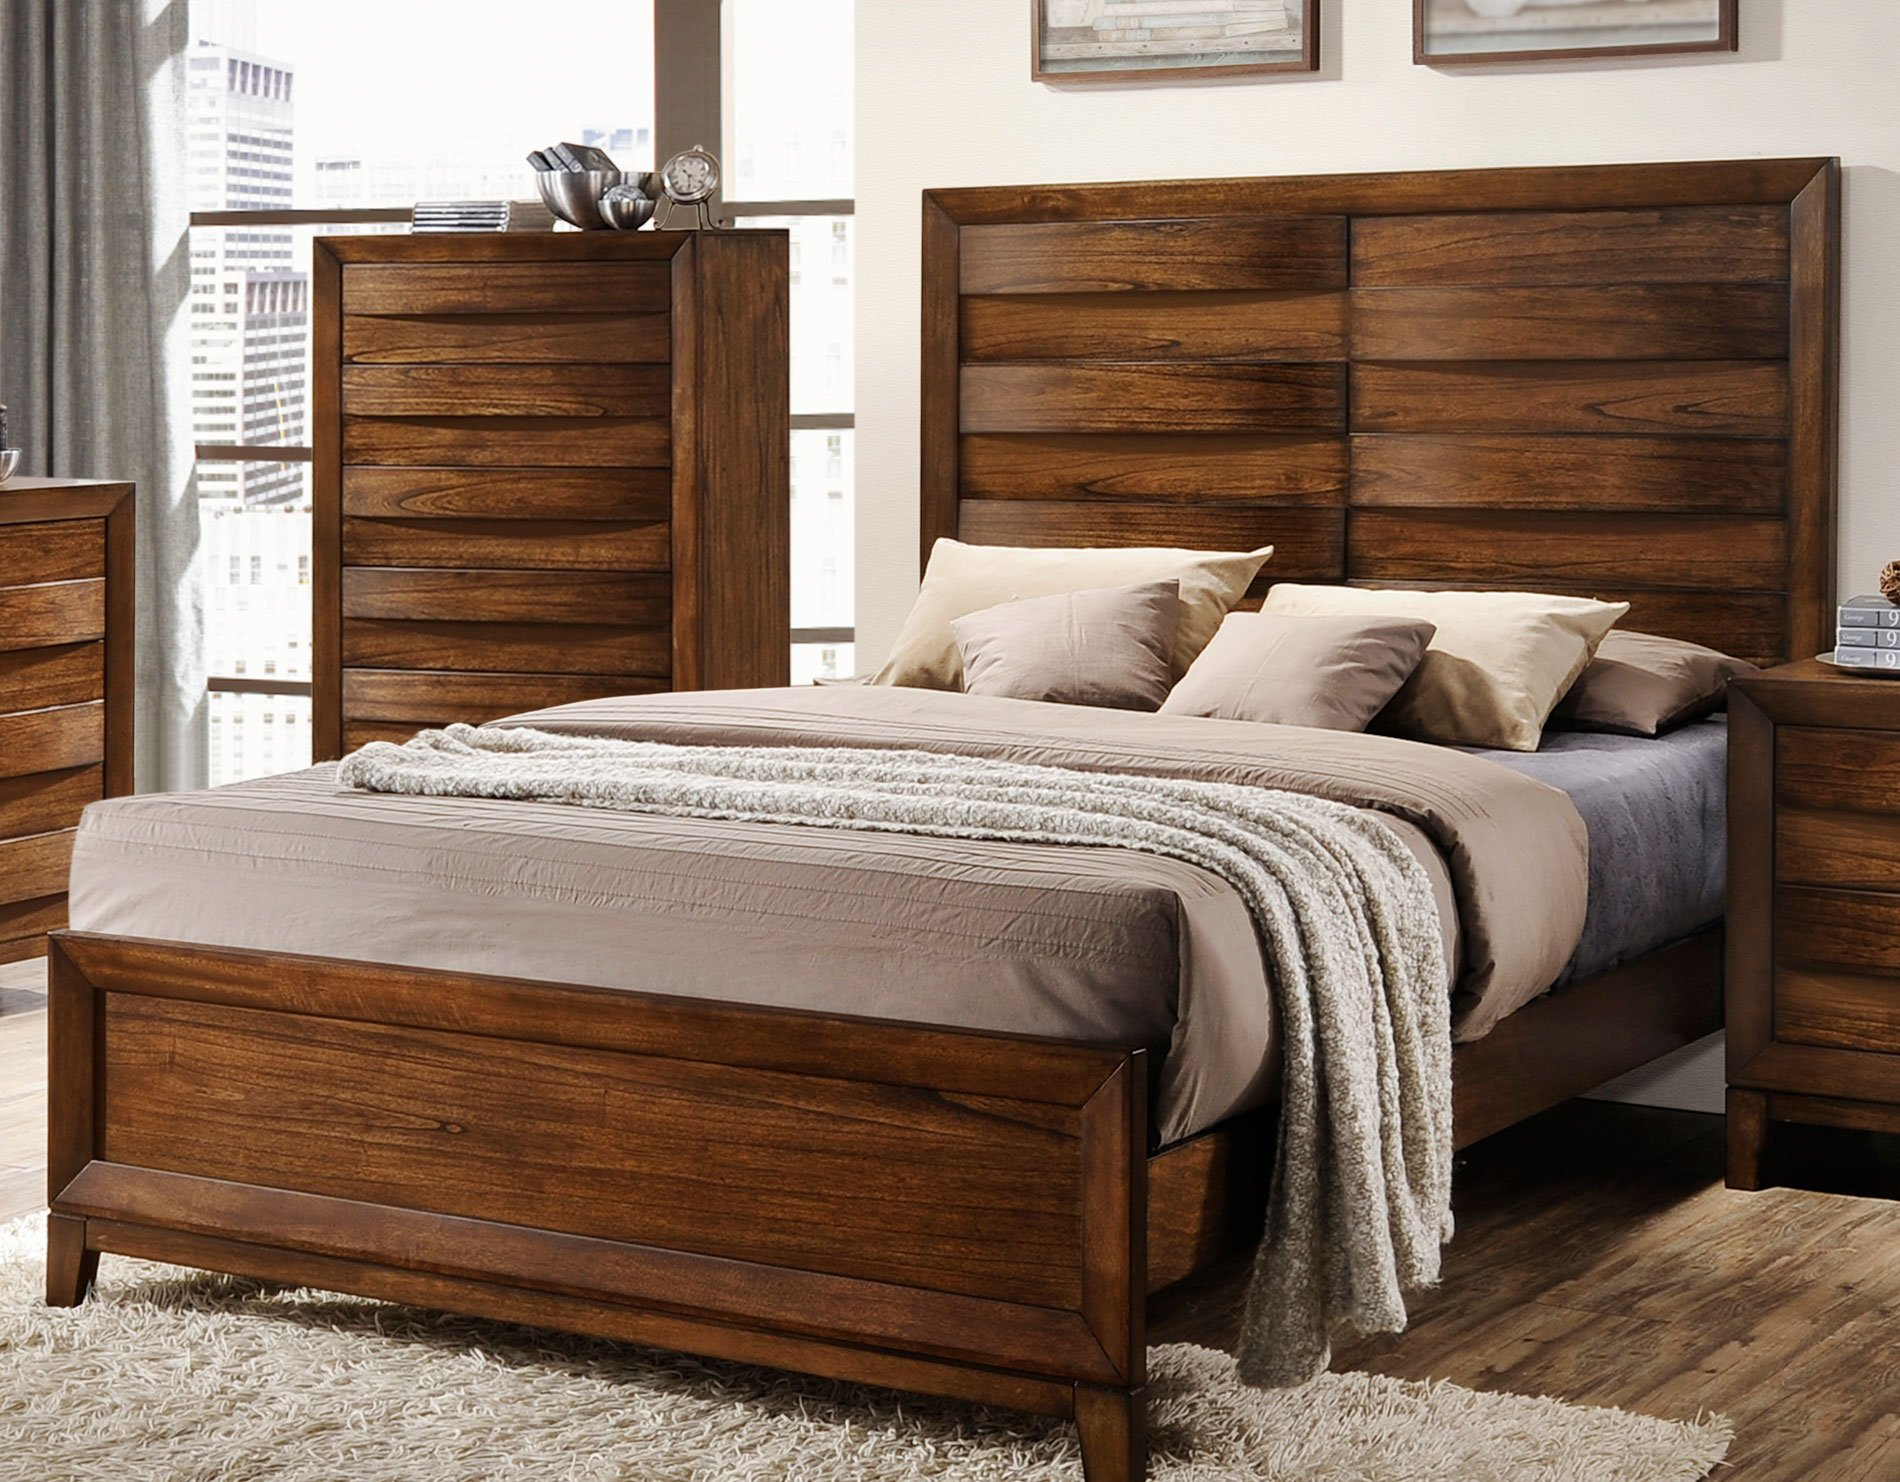 Rustic Modern Oak 5 Piece Queen Bedroom Set Kelton Rc Willey Furniture Store